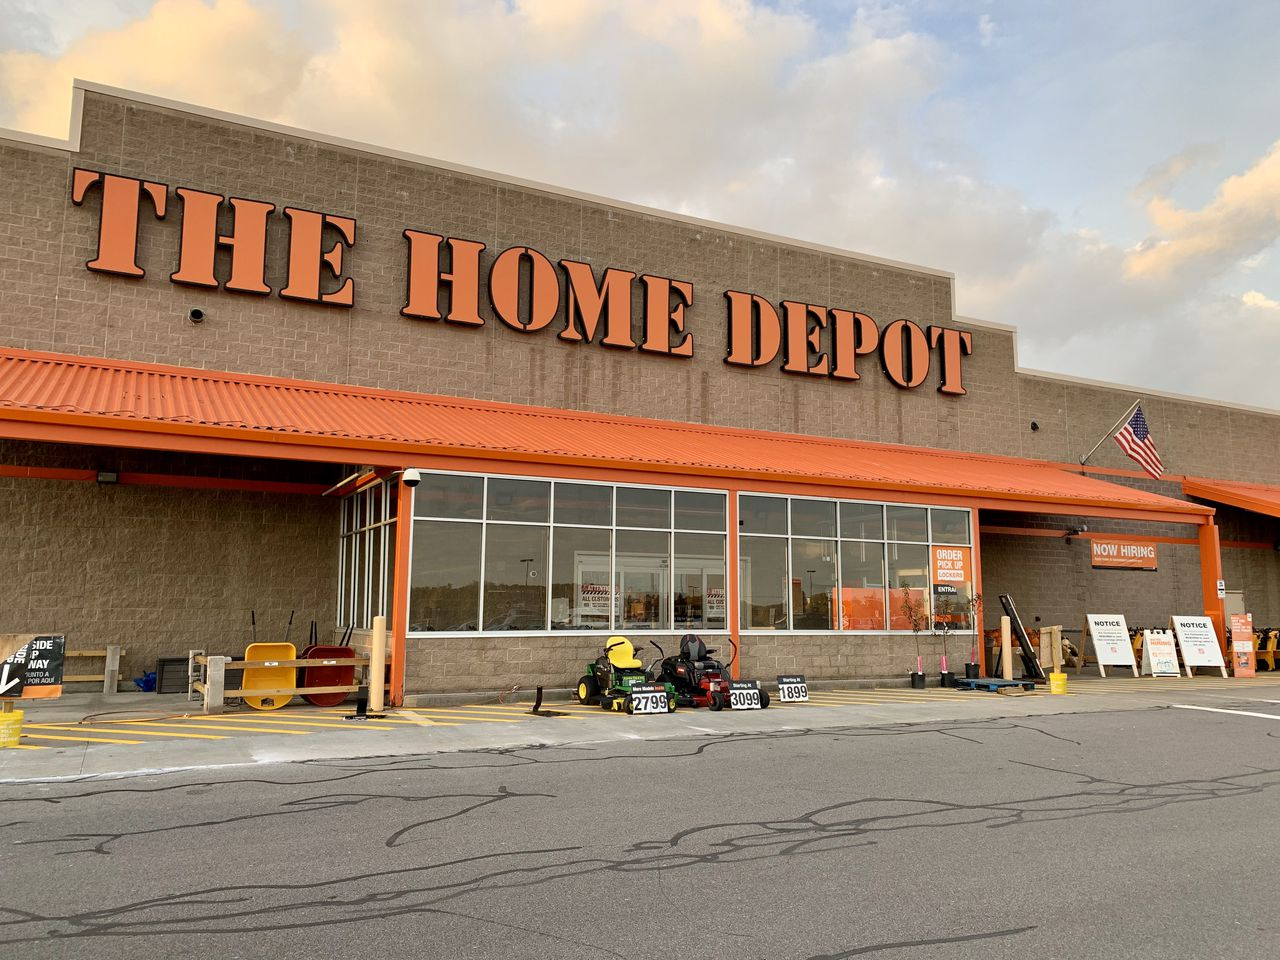 Easter Sunday 2021 Store Opening Hours for Walmart, Home Depot, CVS, Walgreens, Rite Aid, PetSmart, and more